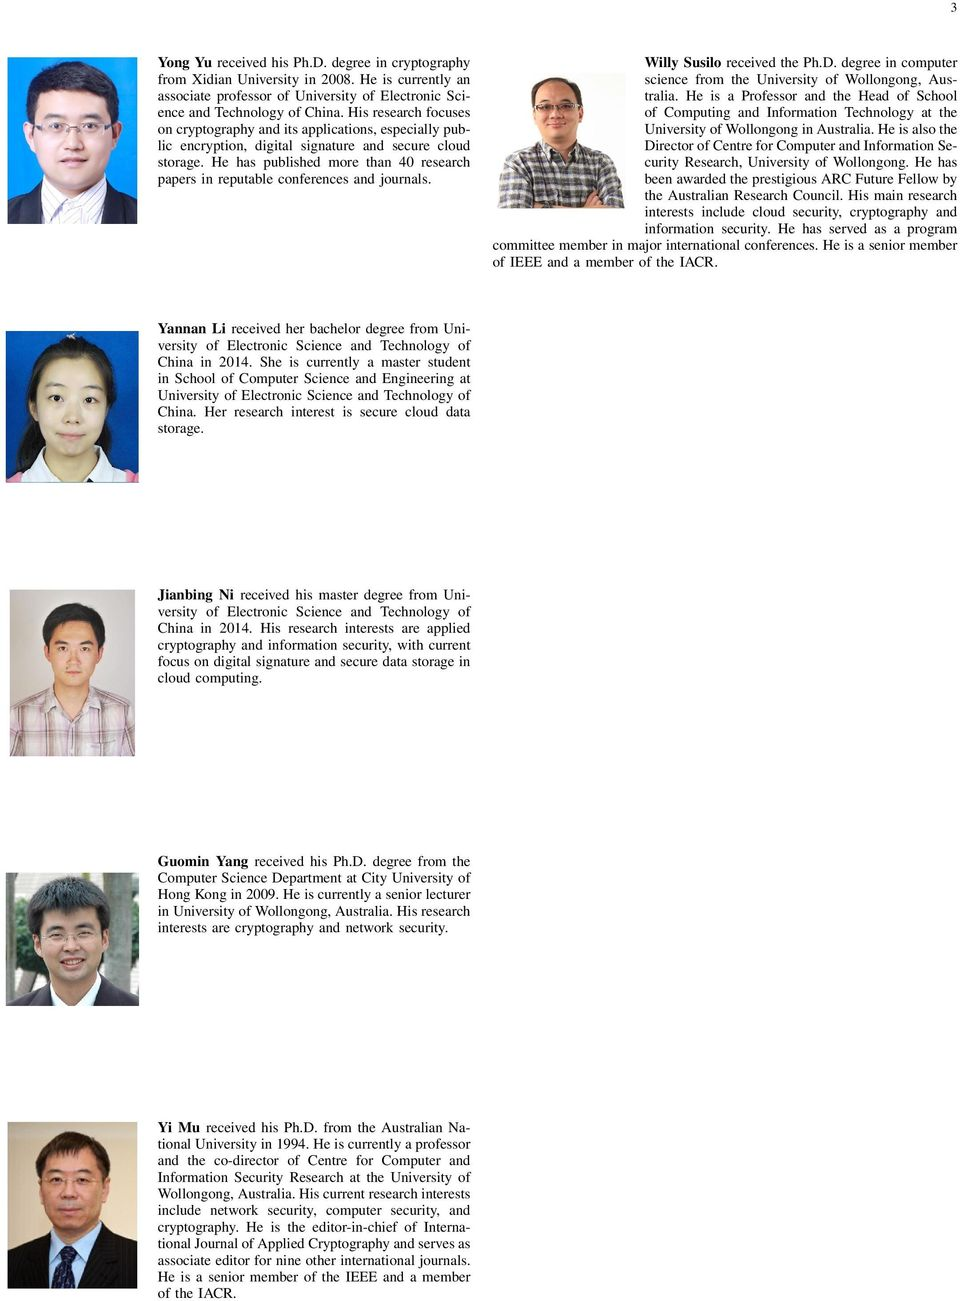 journals Yannan Li received her bachelor degree from University of Electronic Science and Technology of China in 2014 She is currently a master student in School of Computer Science and Engineering